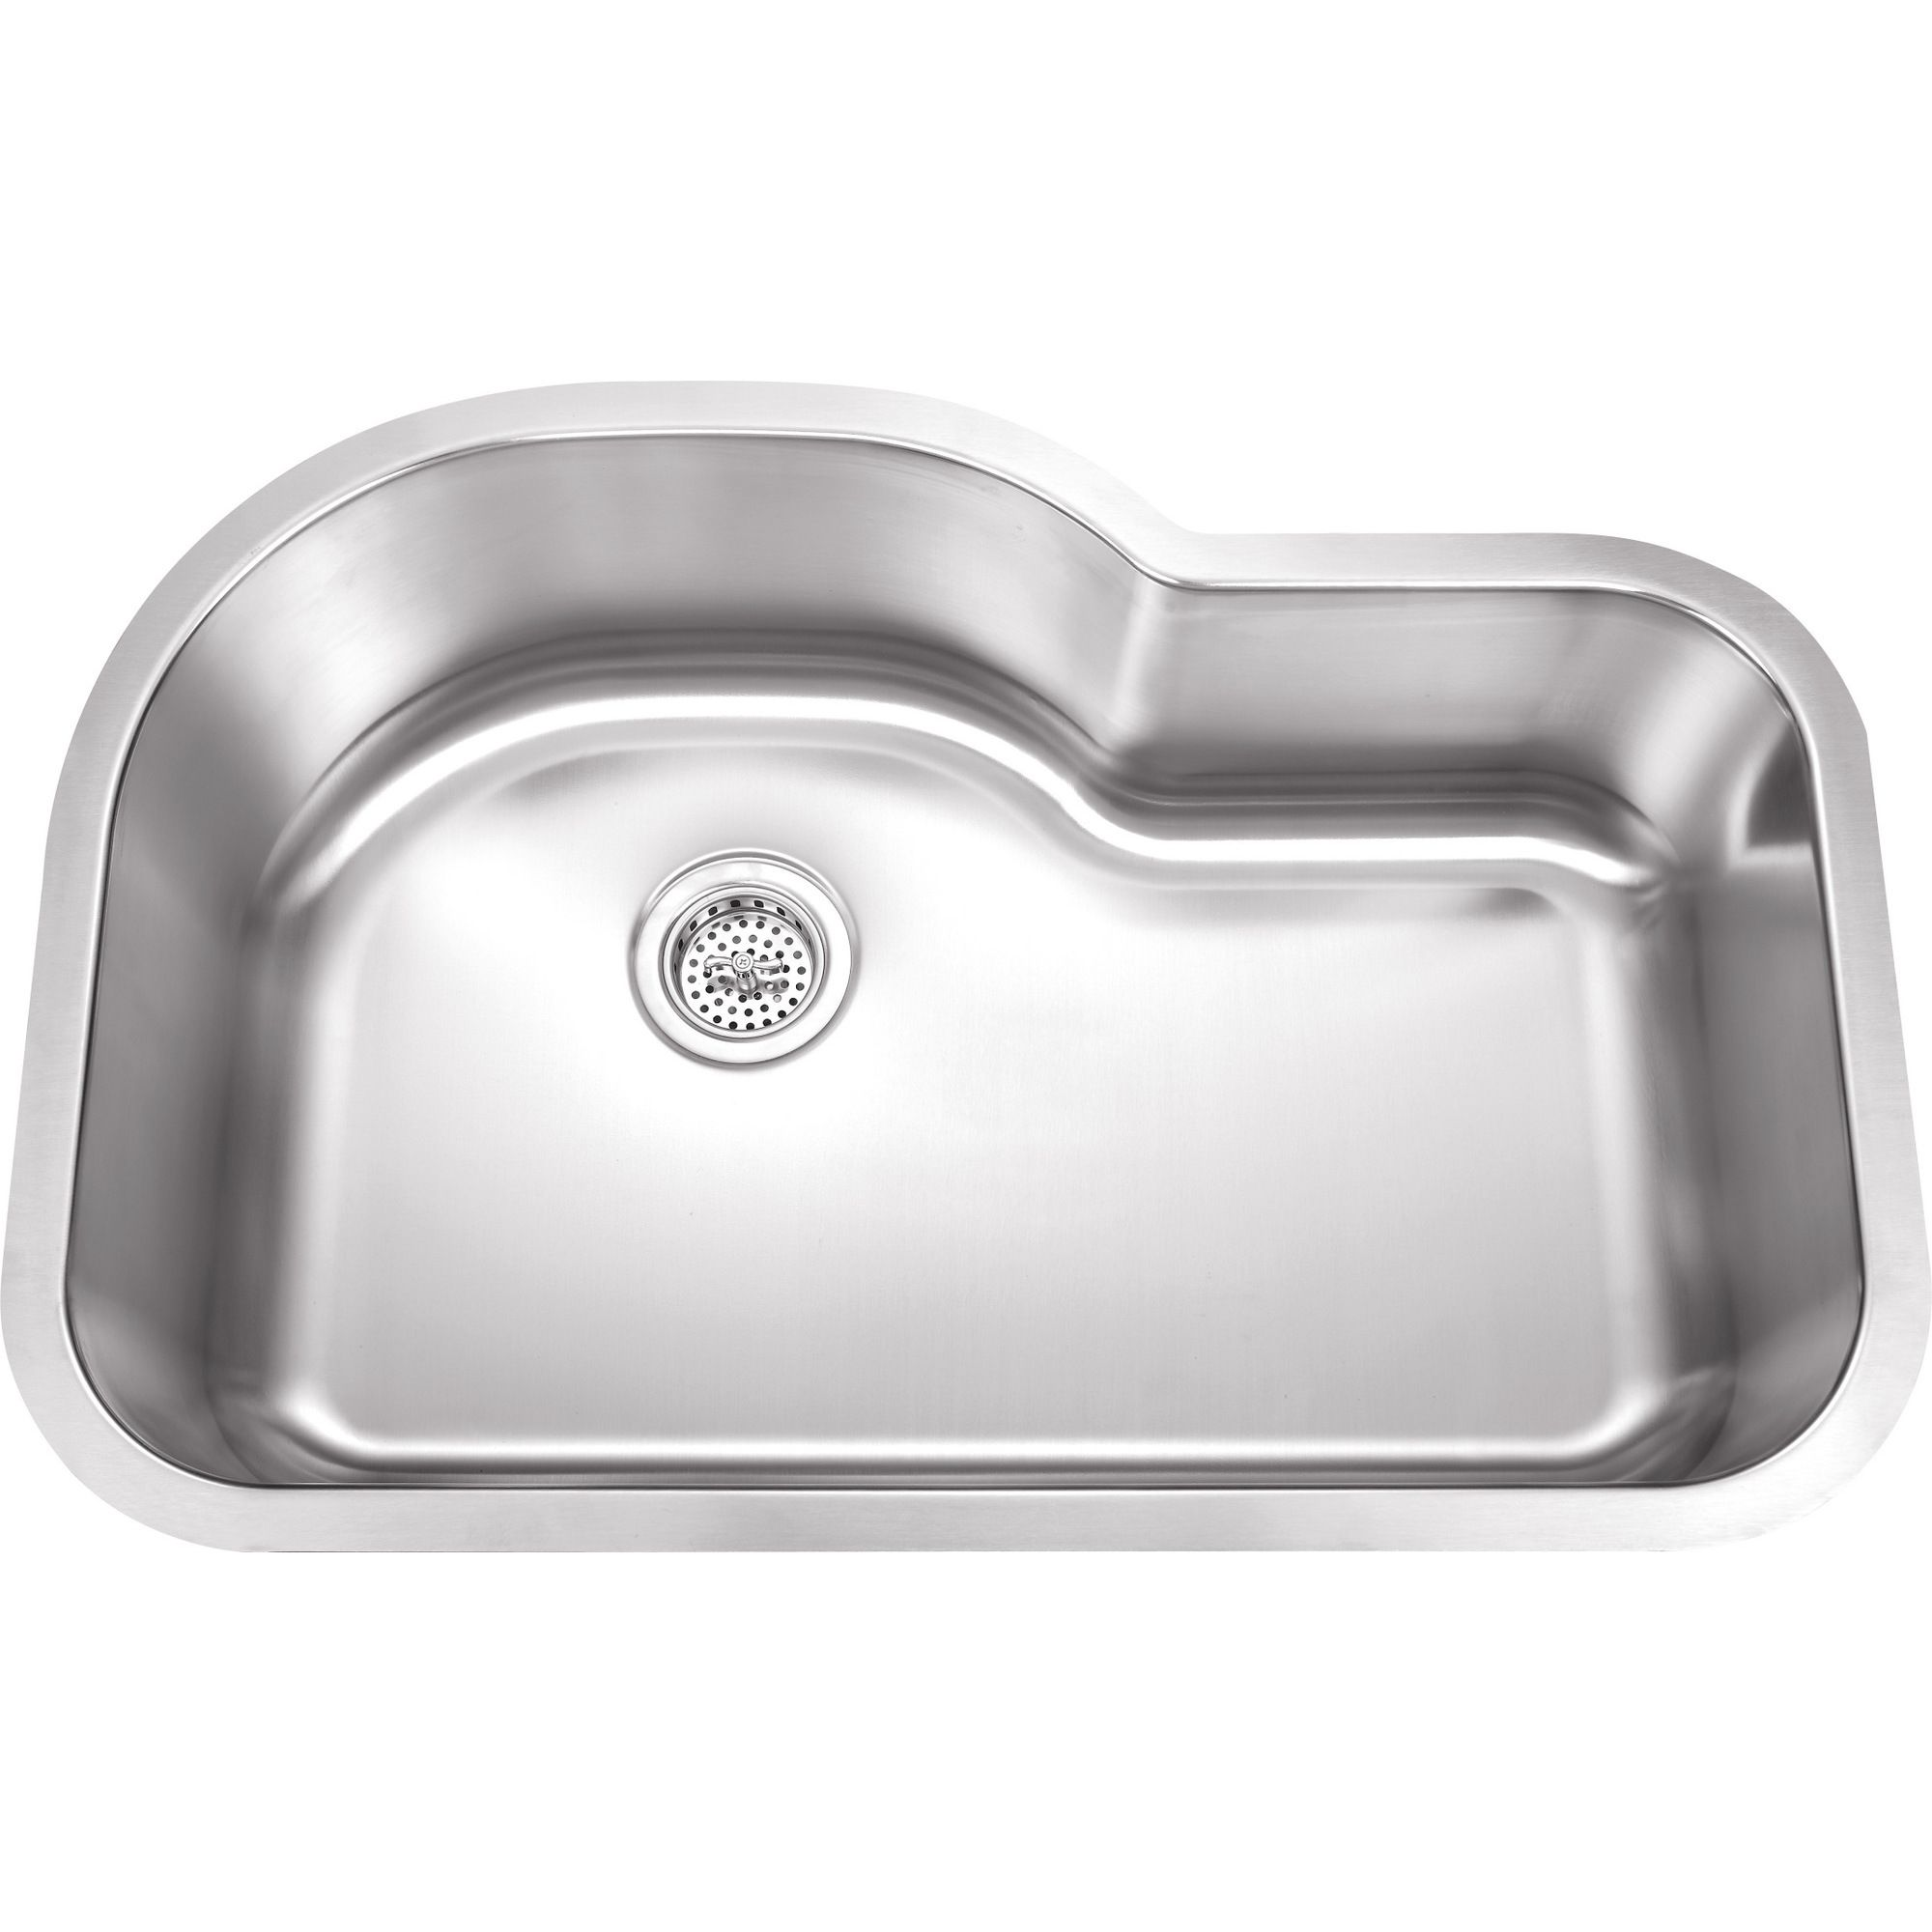 Overstock Com Online Shopping Bedding Furniture Electronics Jewelry Clothing More Single Bowl Kitchen Sink Kitchen Sink Sink